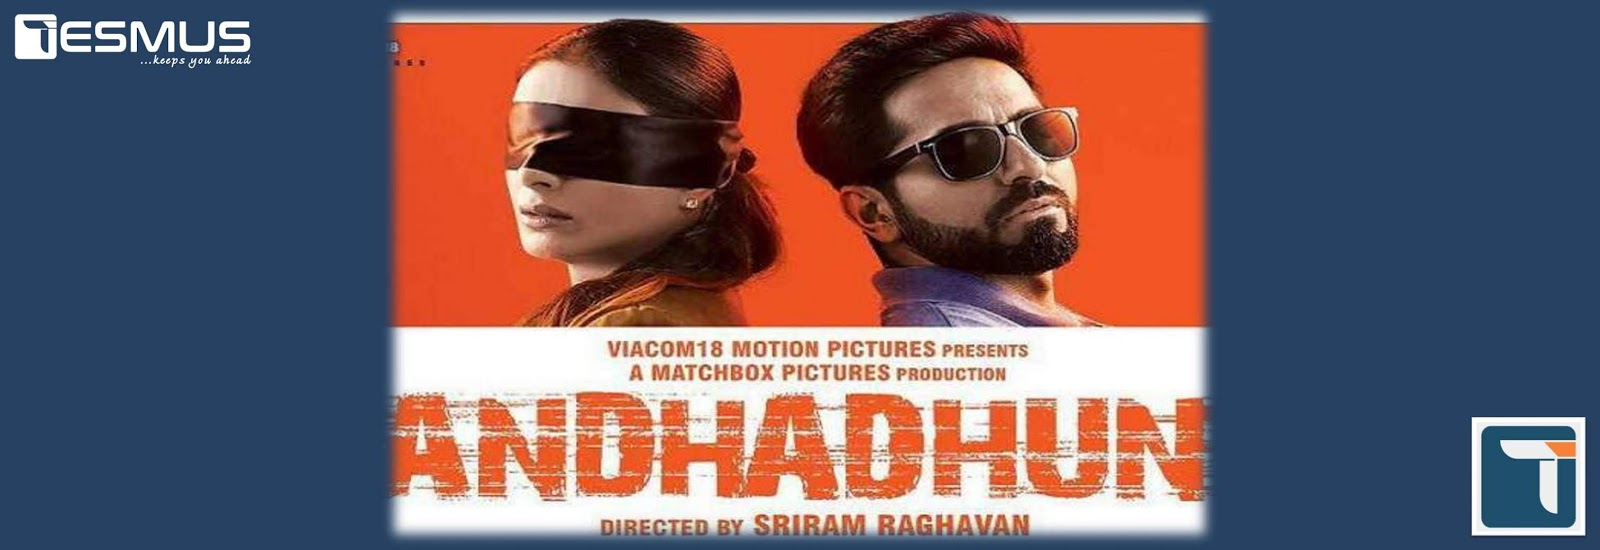 Ayushmann starrer 'AndhaDhun' named top Indian movie by IMDb: 14 12